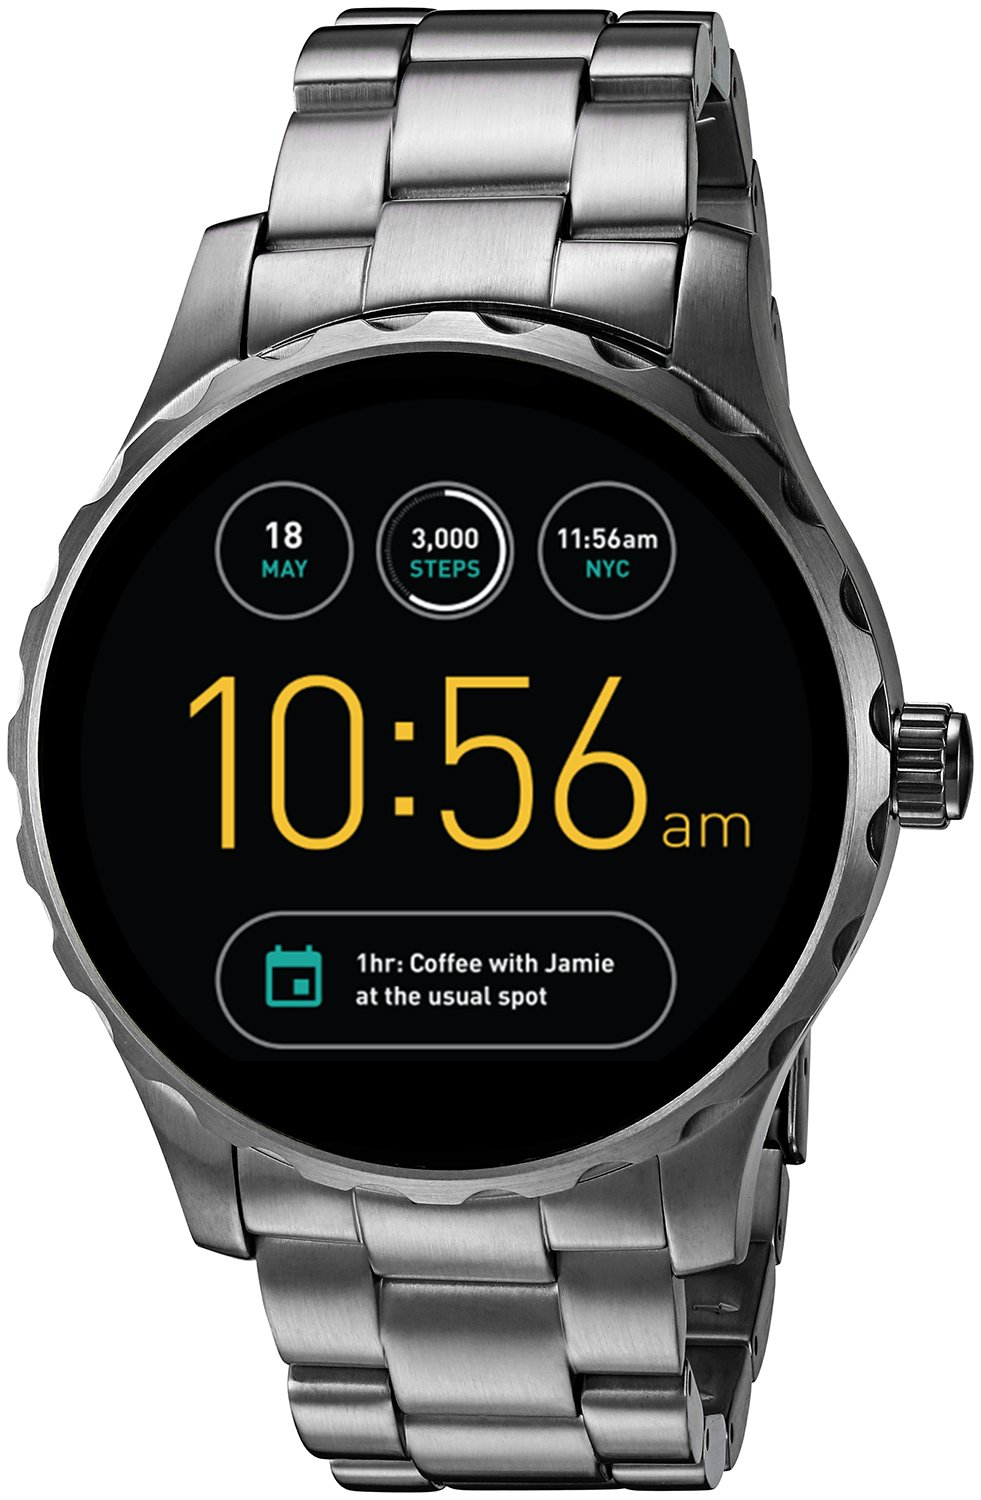 Fossil Q Marshal Gen 2 Smoke Stainless Steel Touchscreen Smartwatch FTW2108 by Fossil